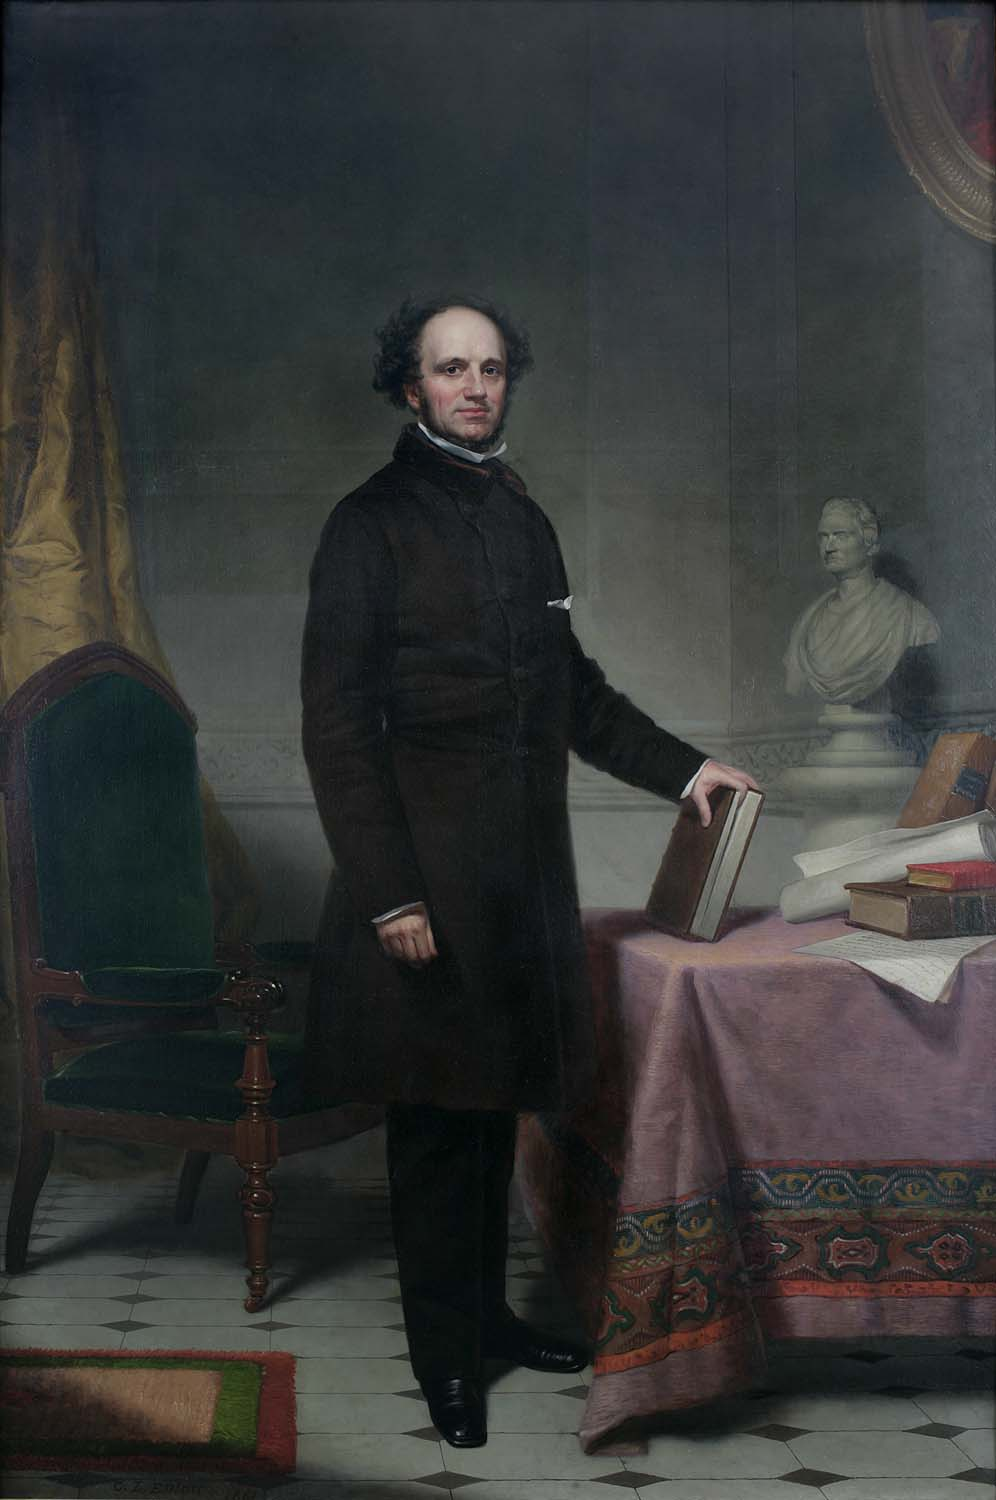 A racist campaign - New York Governor Horatio Seymour's portrait is prominently displayed in City Hall. Governor Seymour ran one of the most racist campaigns in presidential history. The campaign's motto was